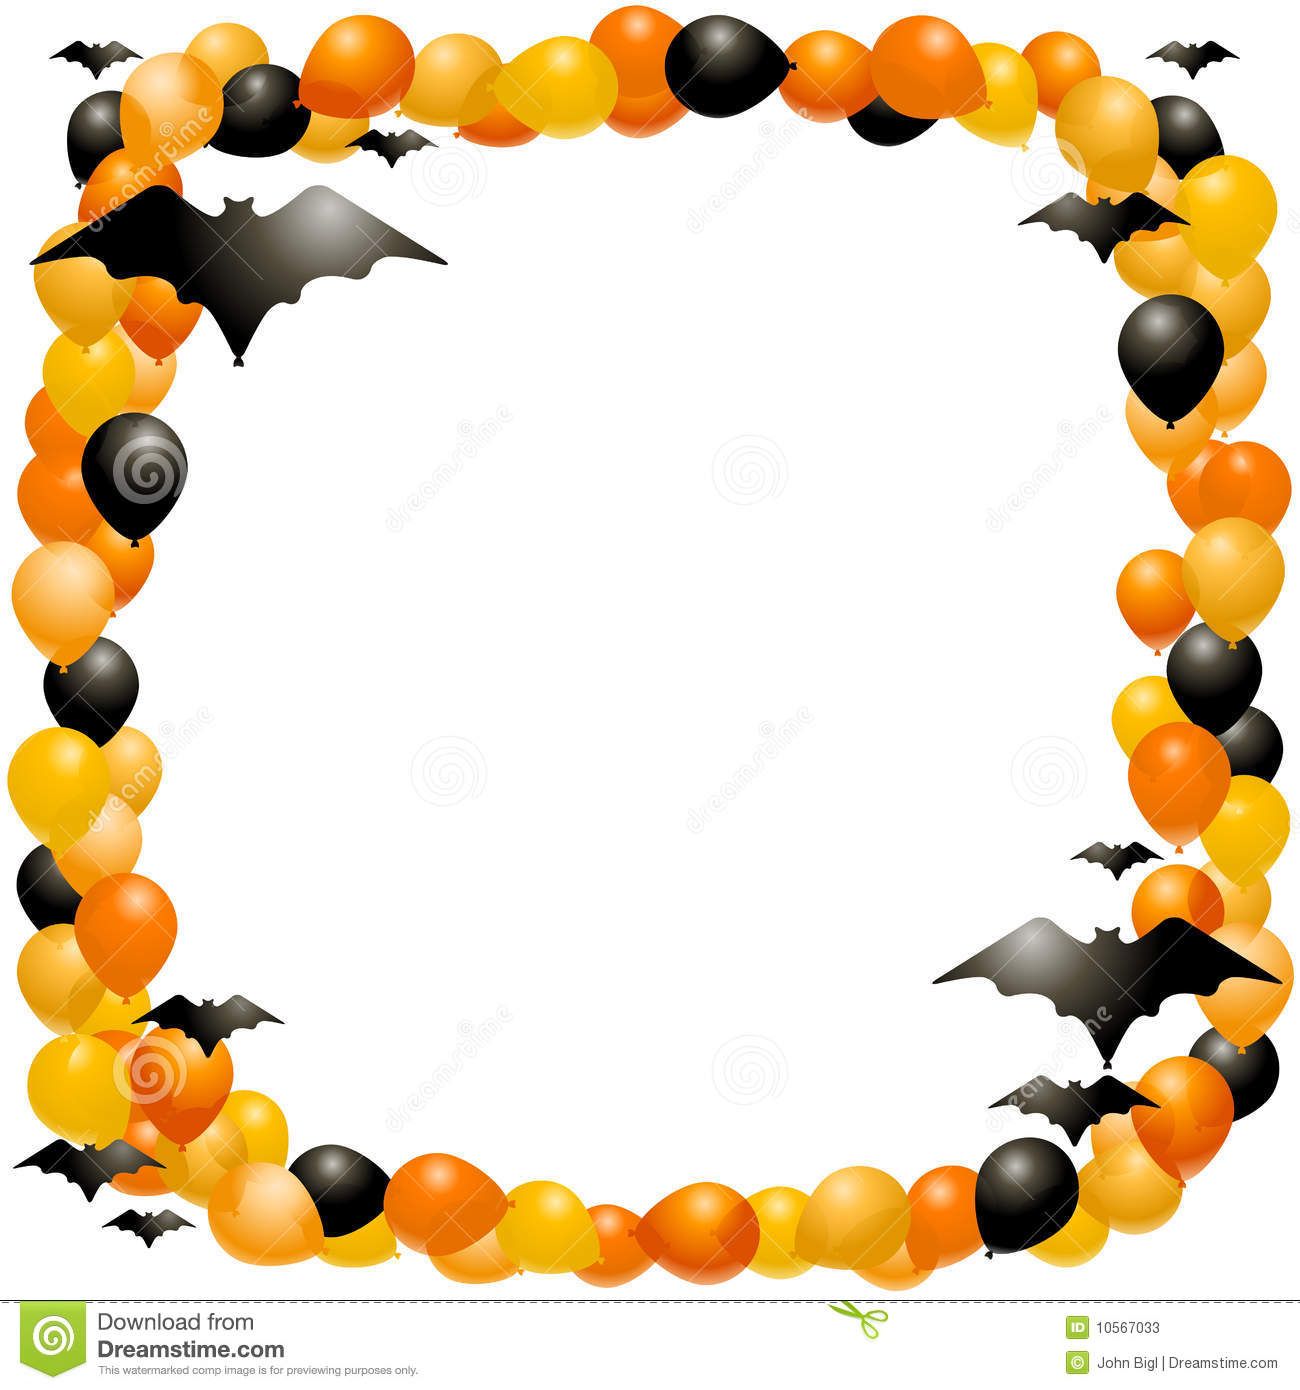 download free printable halloween border frame images pics clipart